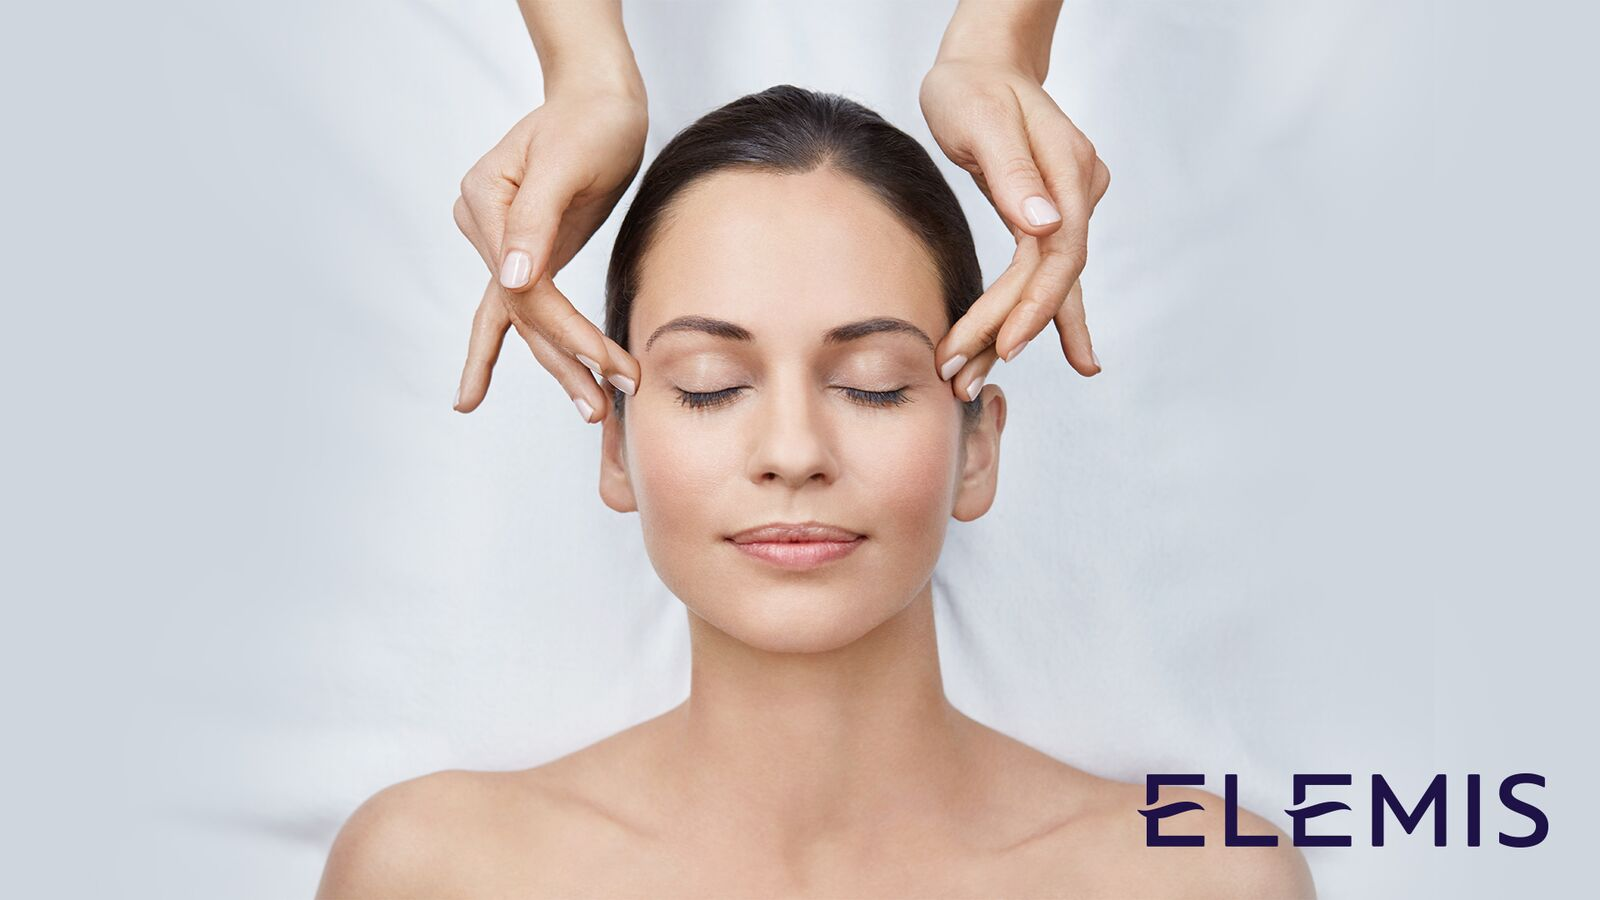 elemis-head-massage.jpg